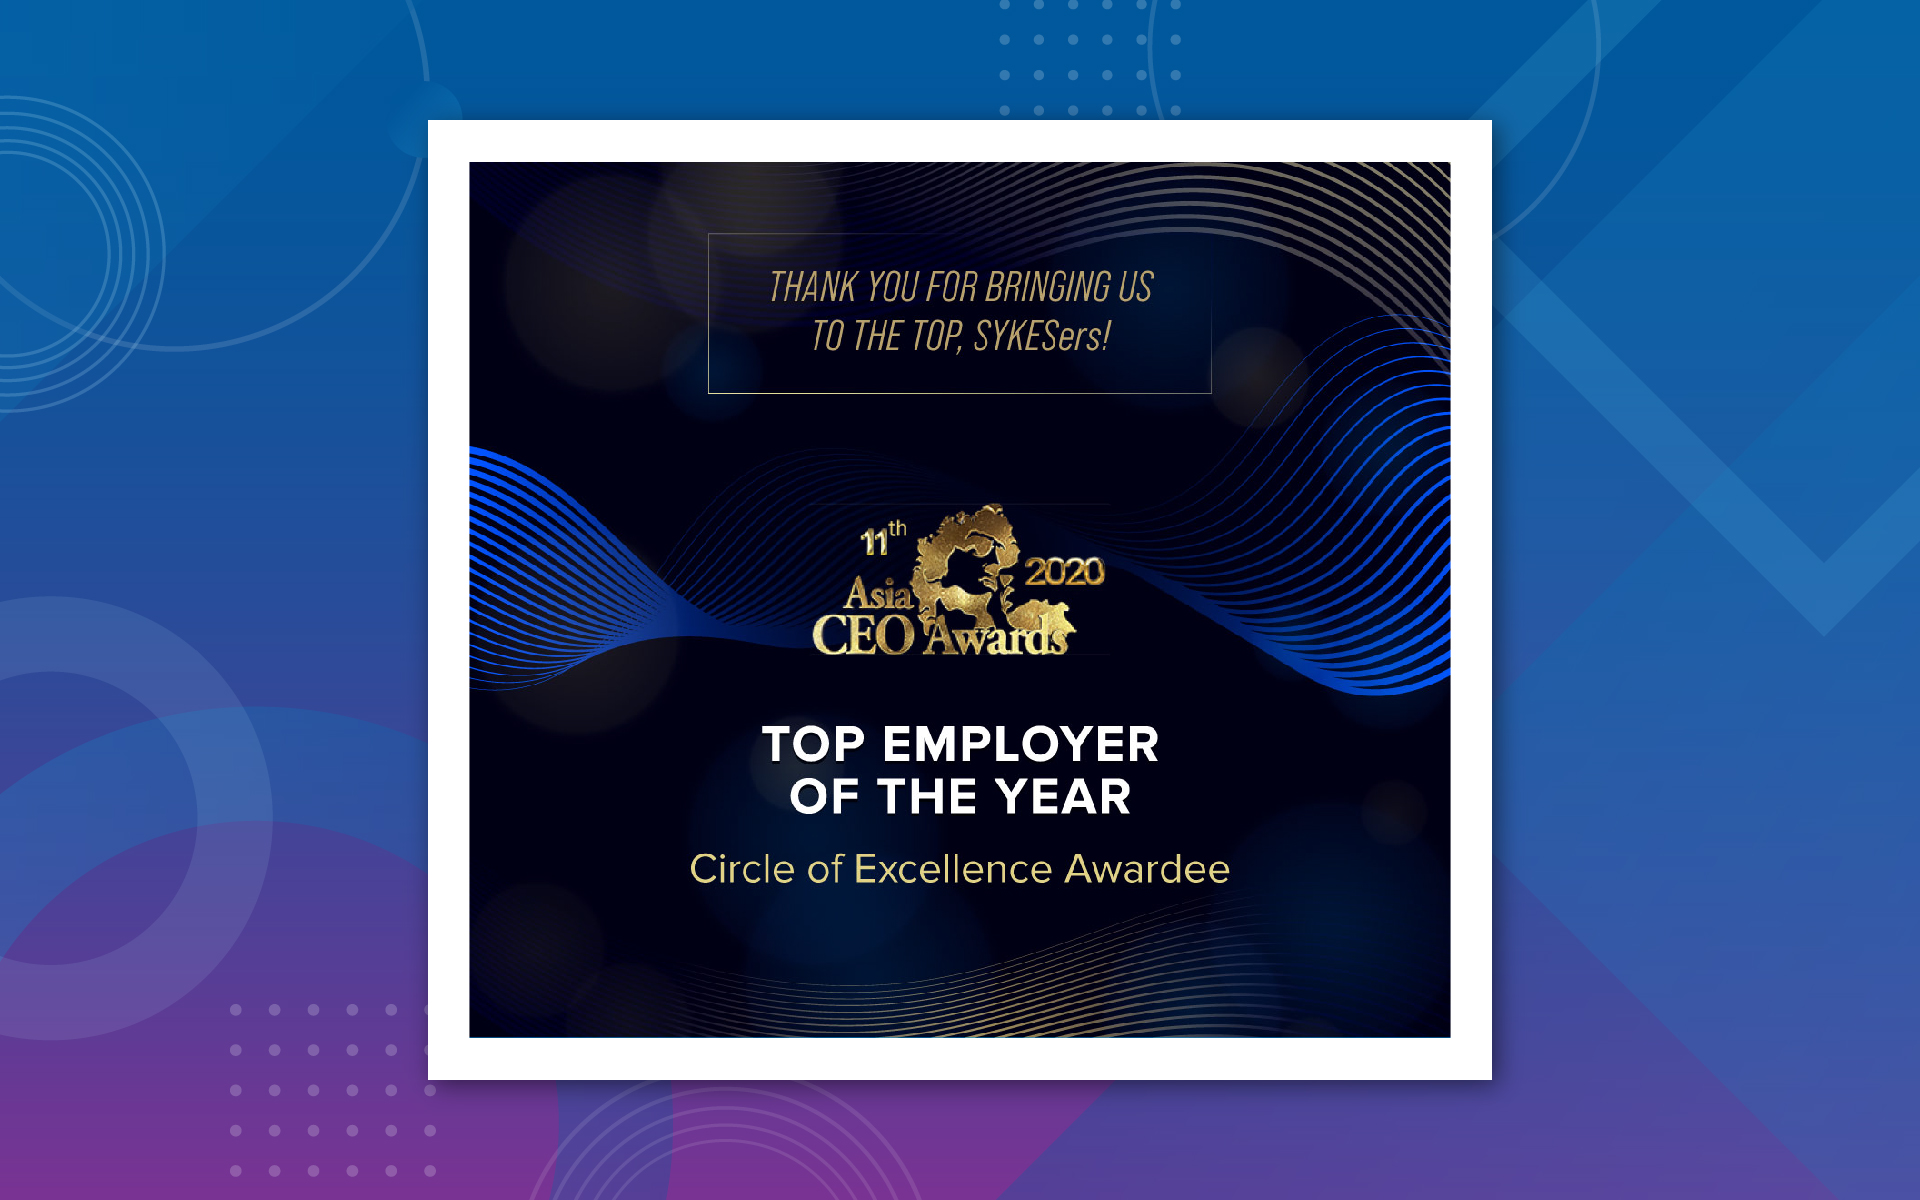 SYKES Philippines Wins Top Employer of the Year at Asia CEO Awards